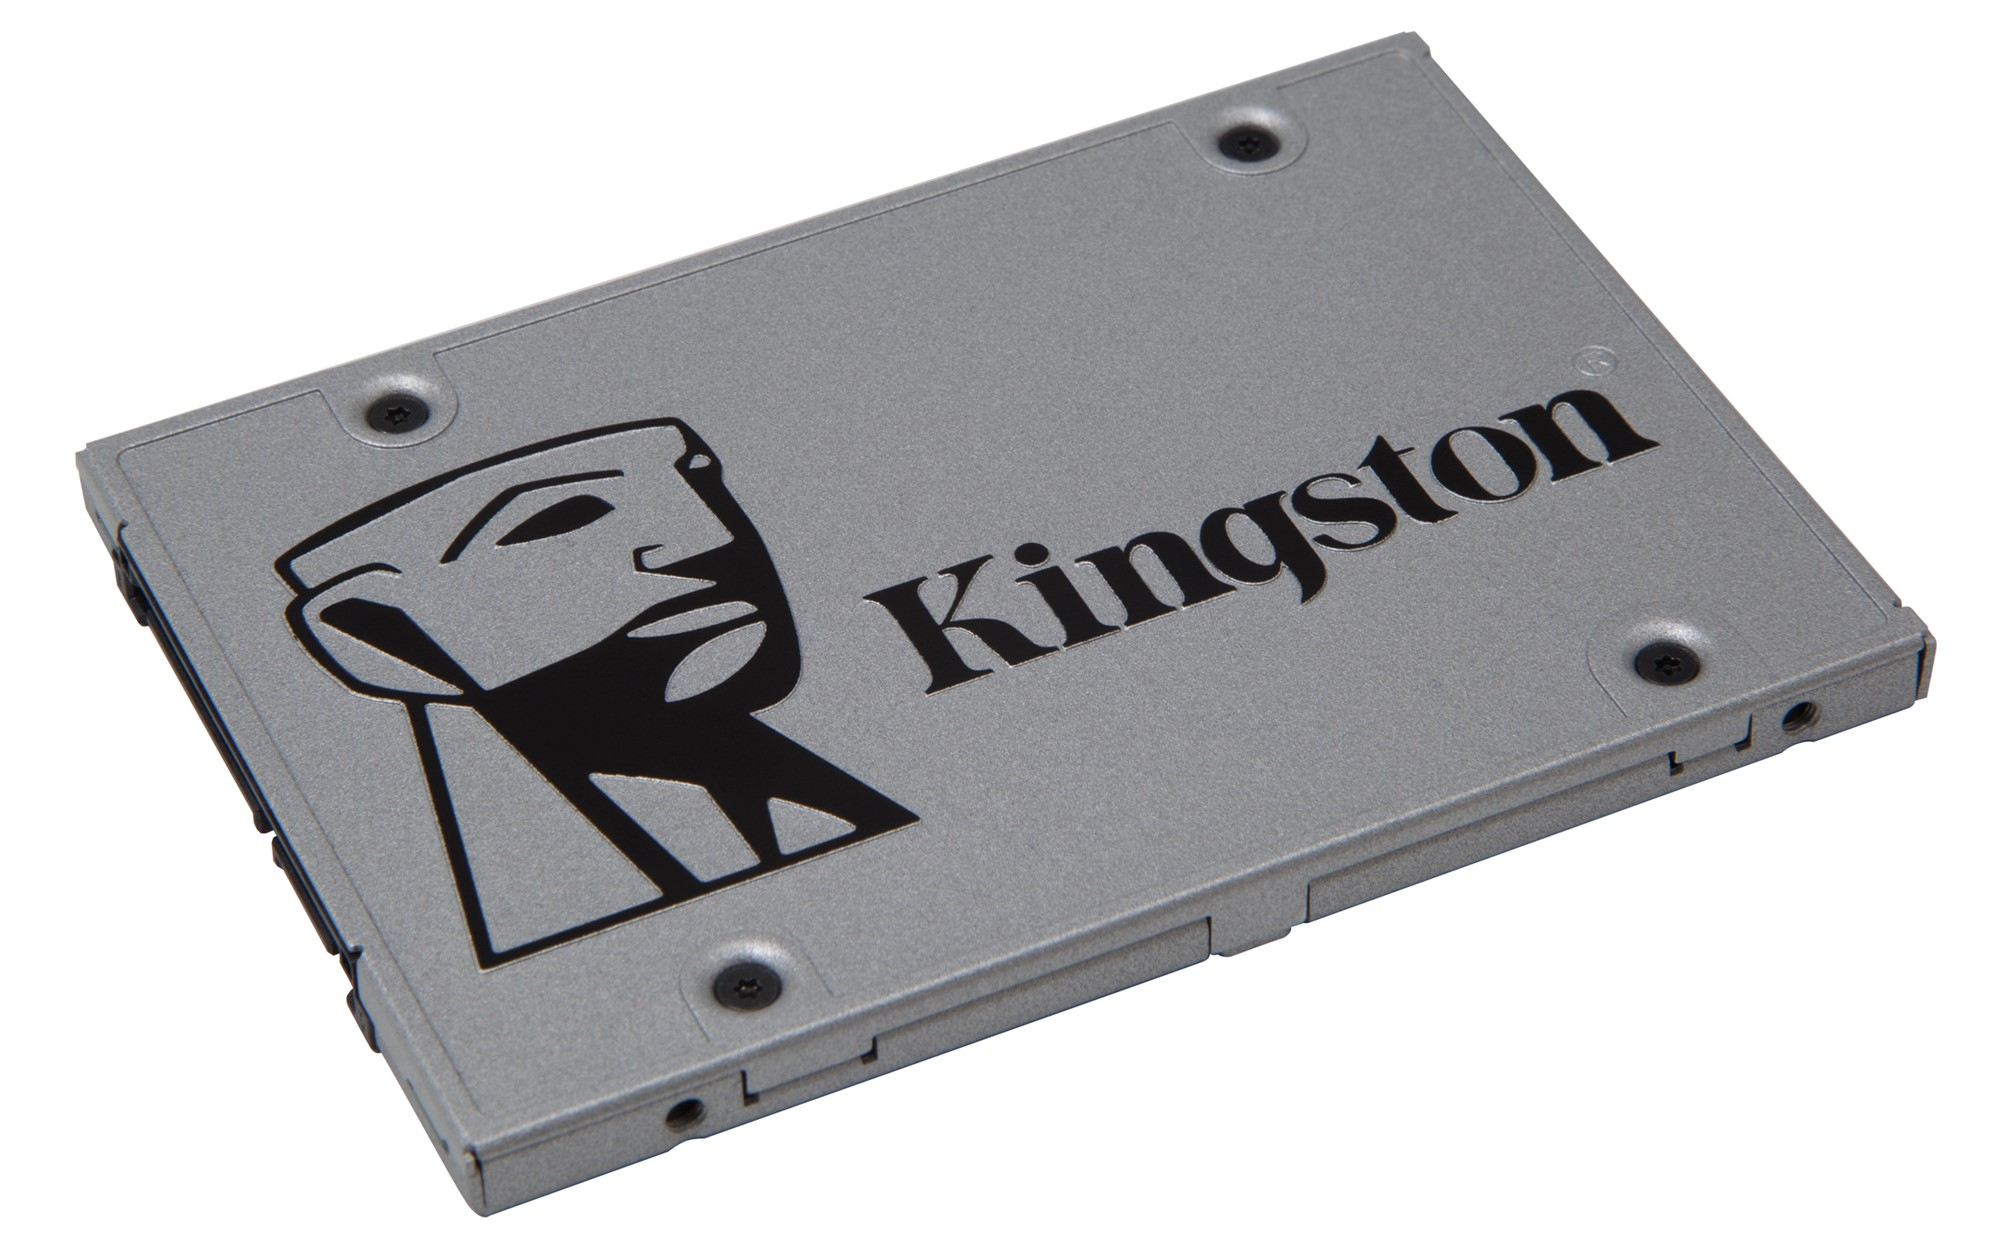 KINGSTON SSDNOW UV400 240GB 2.5